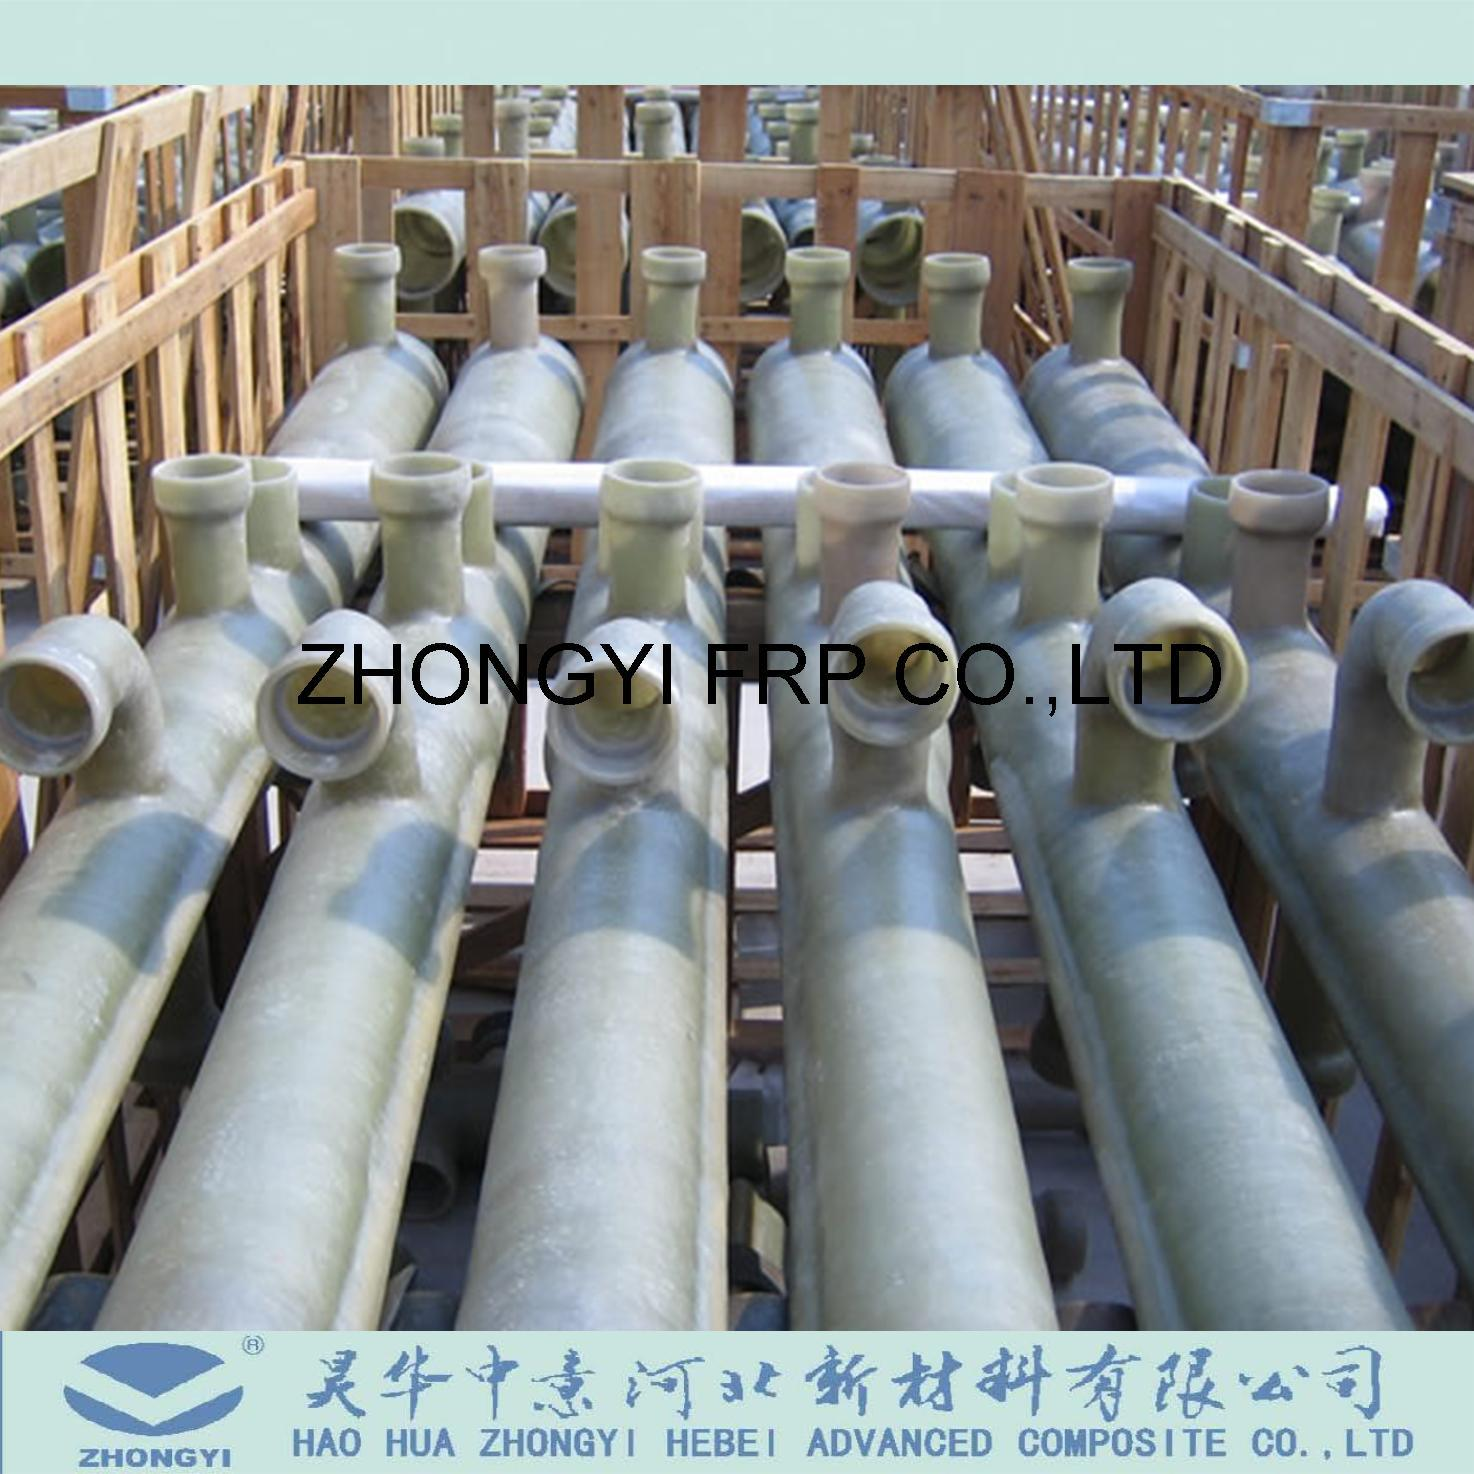 [Hot Item] GRP FRP Pipe Presure Fittings Such as Flanges, Coupling, Elbows